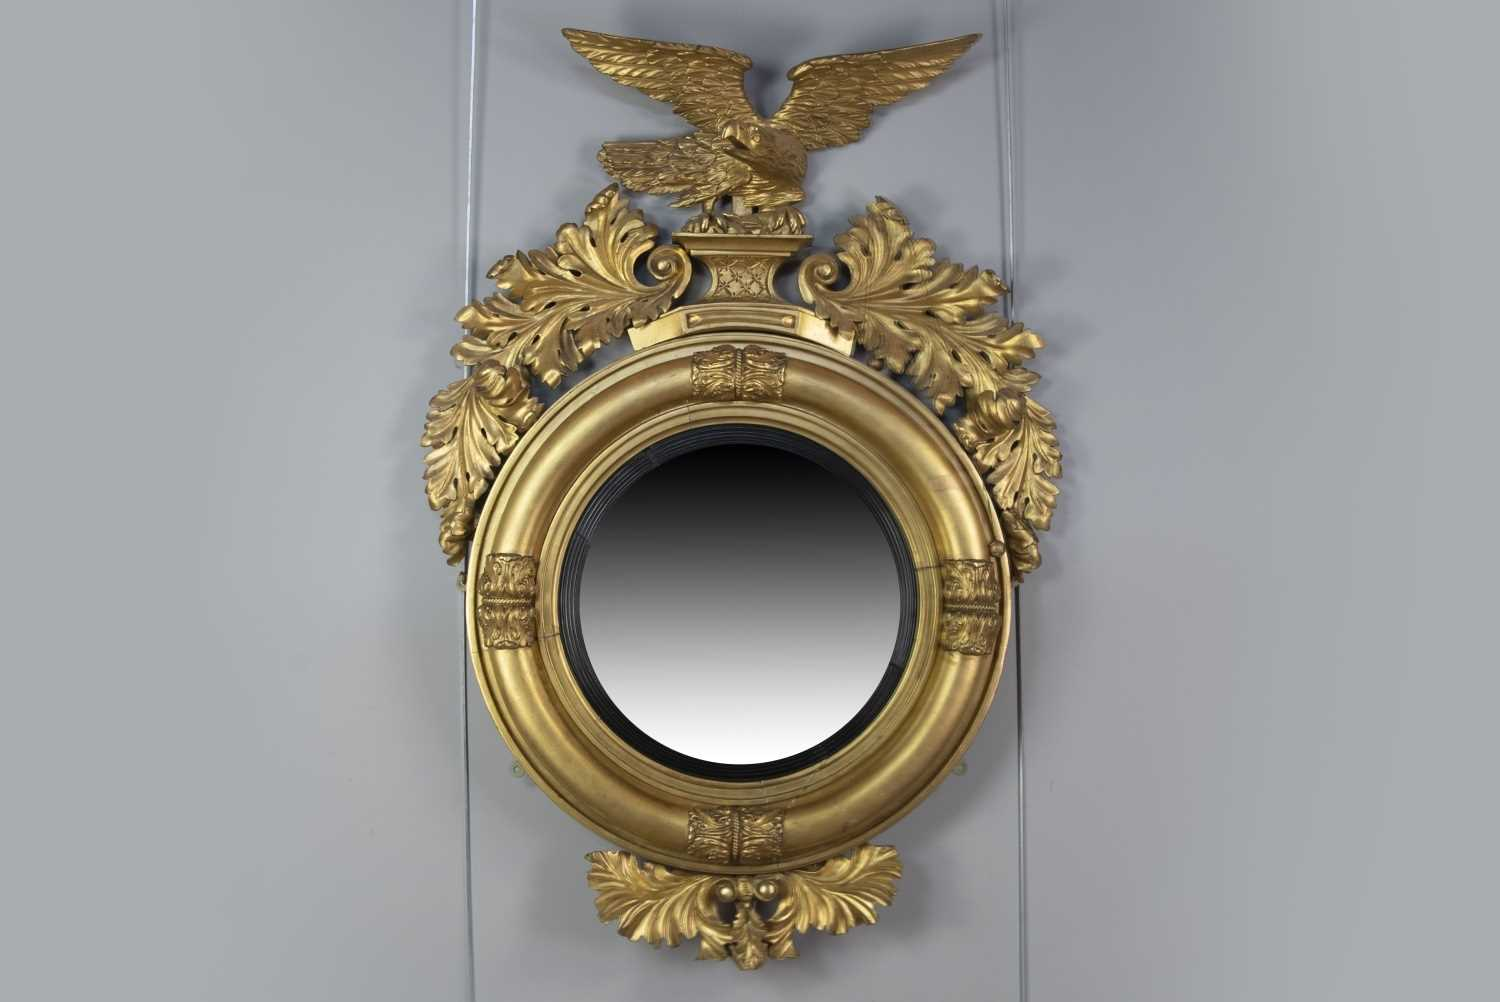 Lot 1272 - A 19TH CENTURY GILT GESSO WALL MIRROR OF LARGE PROPORTIONS